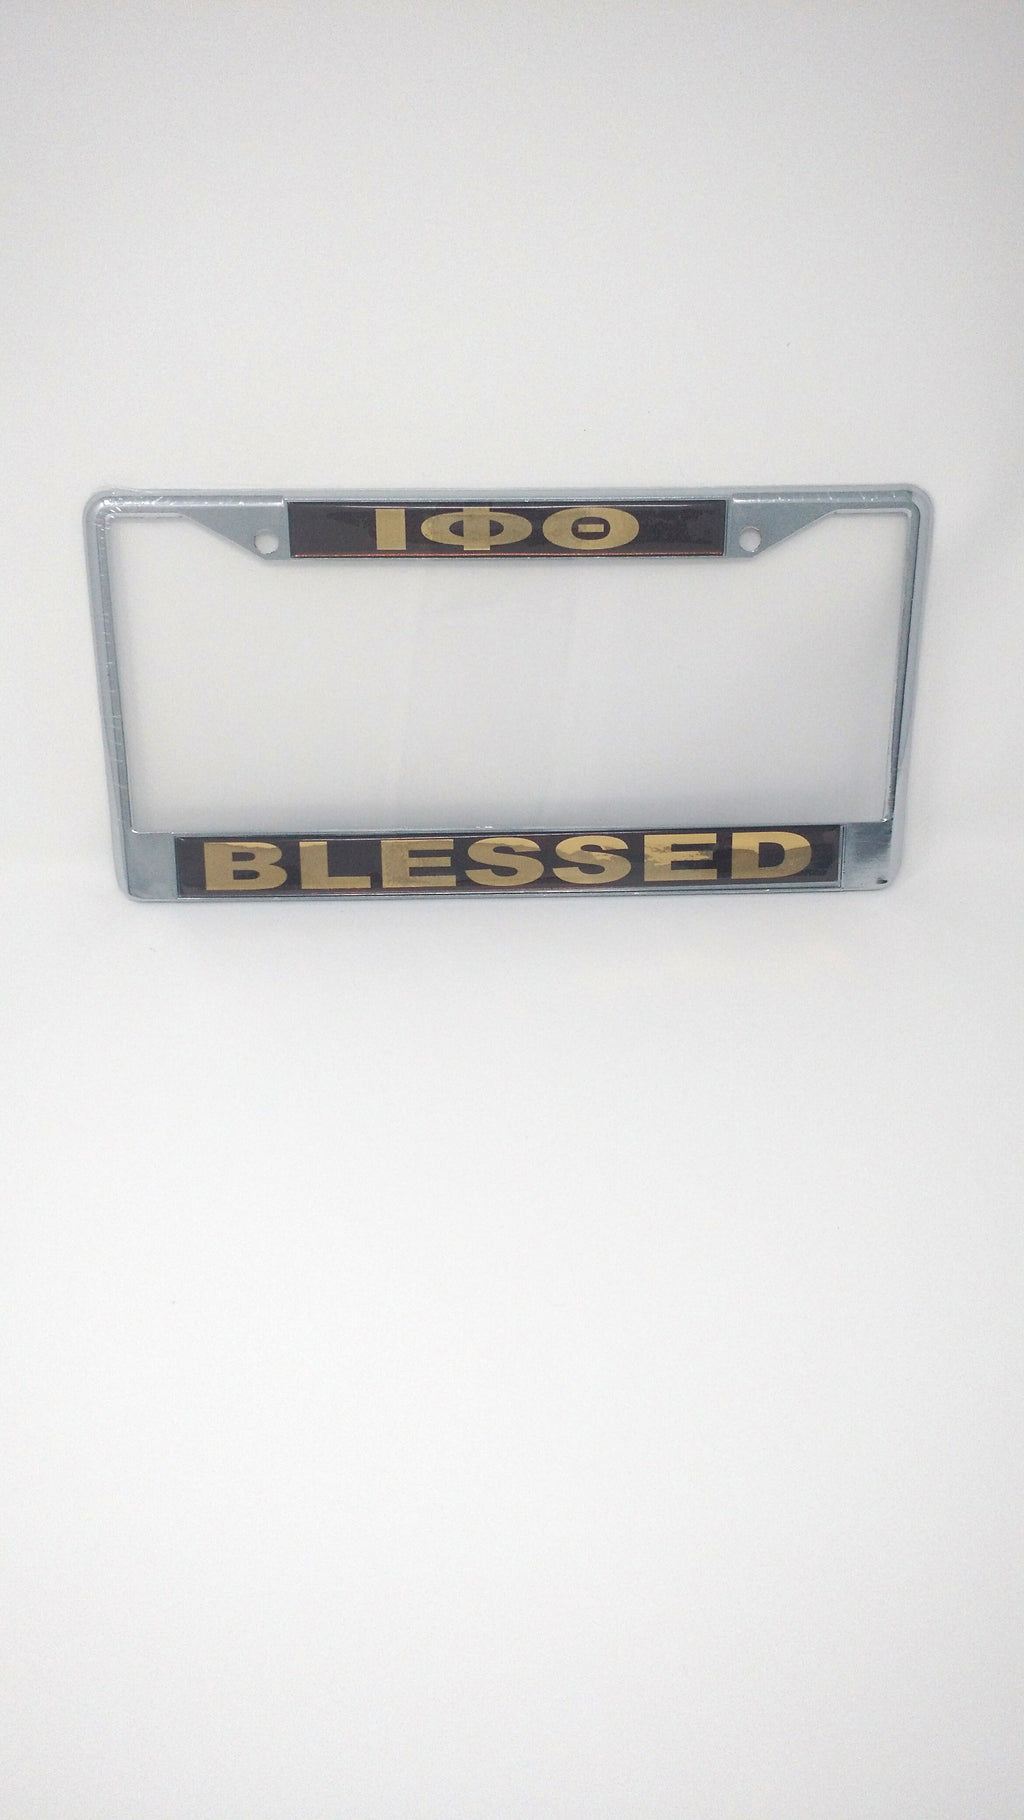 Iota Phi Theta Blessed License Plate Frame